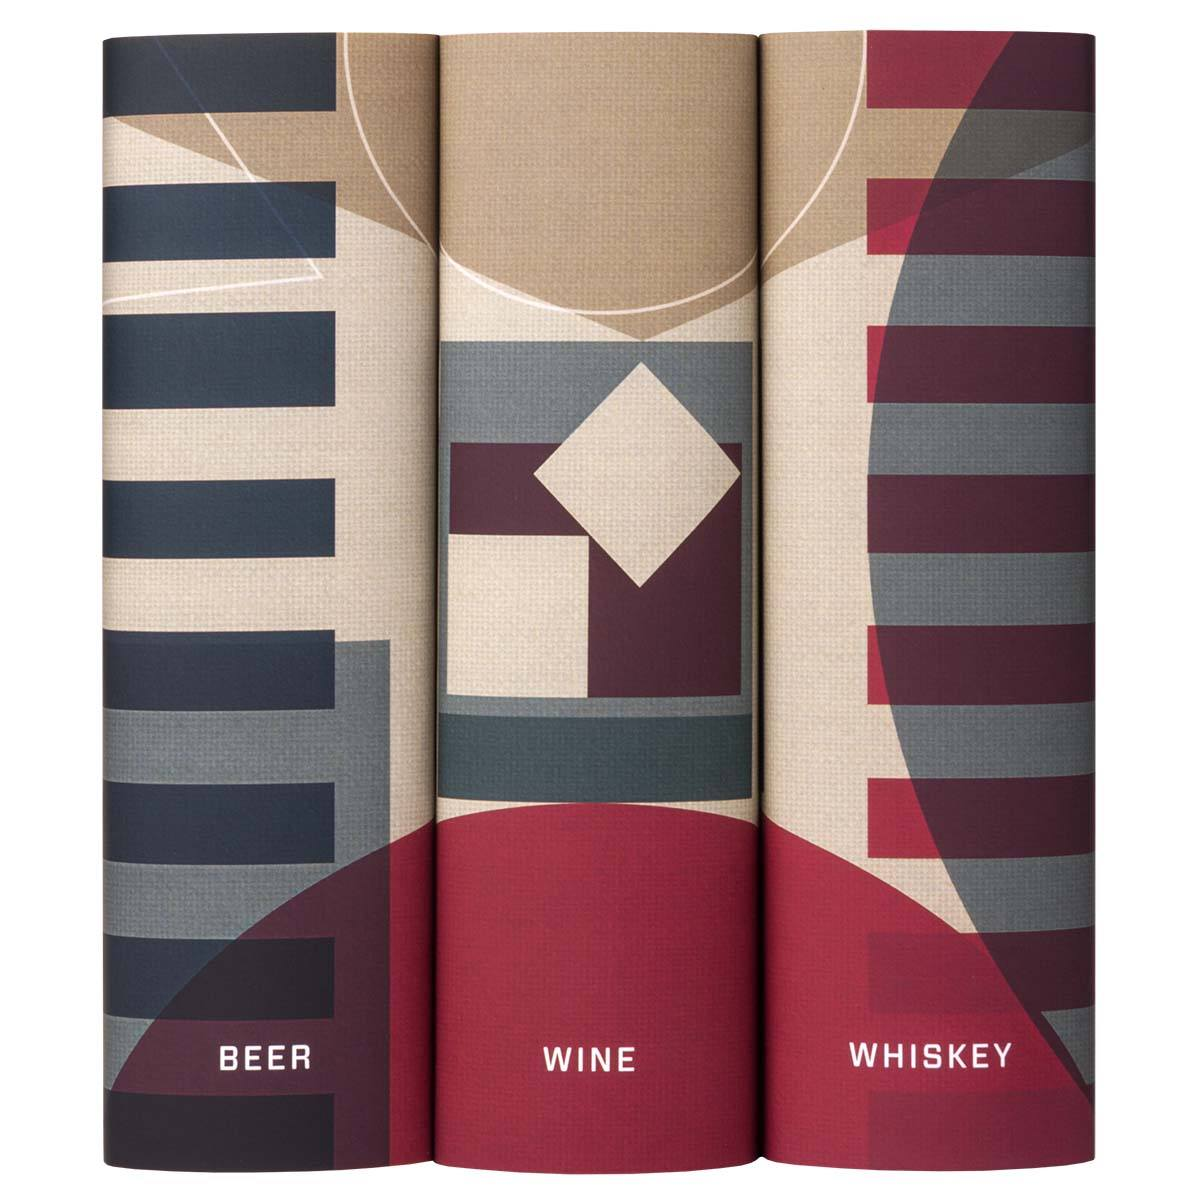 Read it and Drink 1001 Beers You Must Taste Before You Die by Adrian Tierney-Jones 1001 Wines You Must Taste Before You Die by Neil Beckett 1001 Whiskies You Must Taste Before You Die by Dominic Roskrow